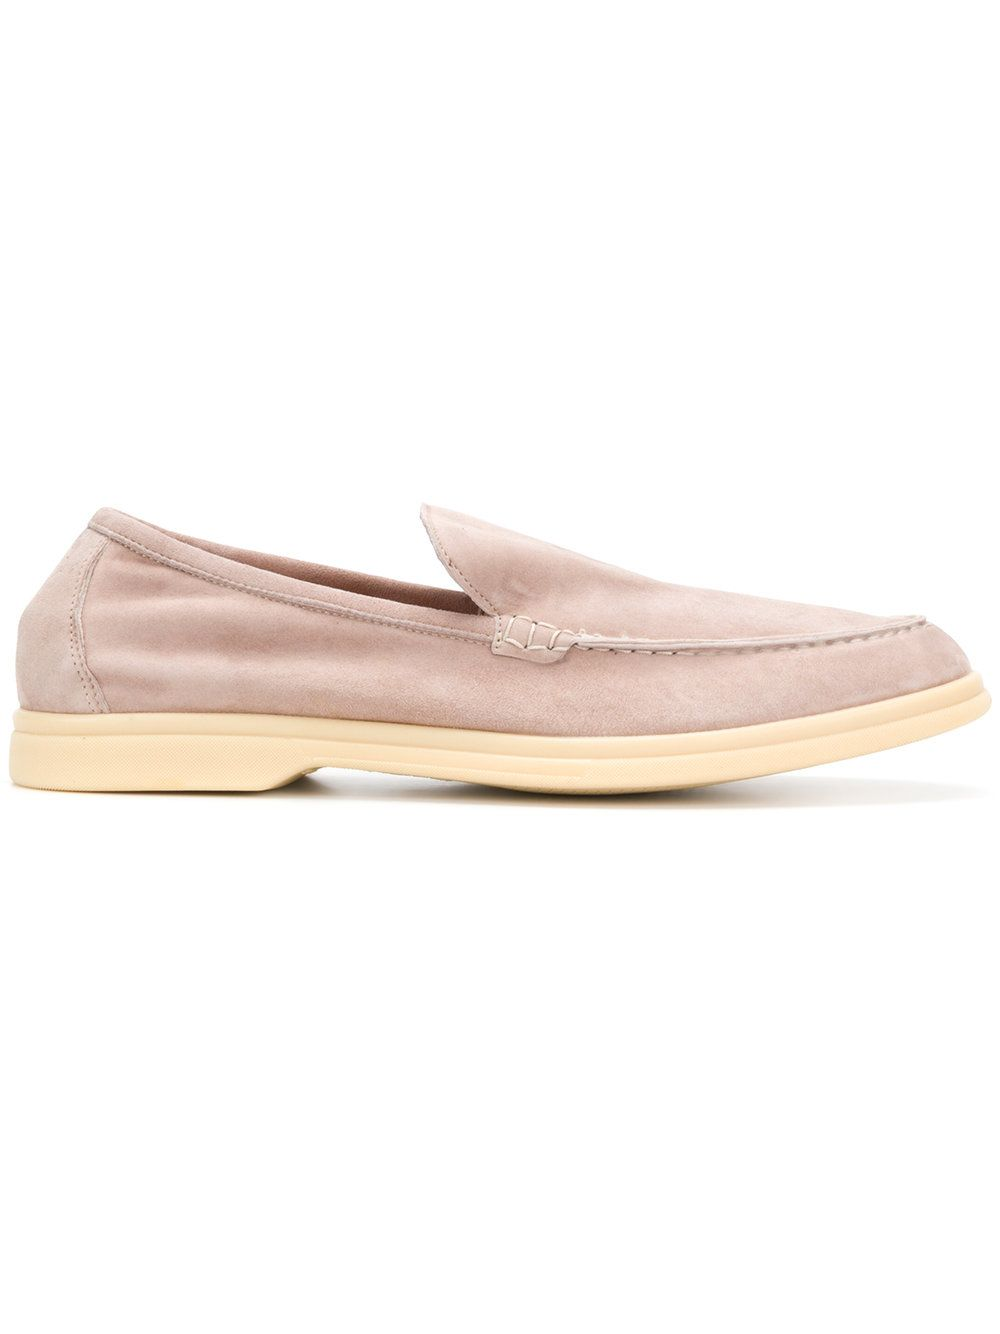 woven loafers - Brown Andrea Ventura N87pUyvYzE